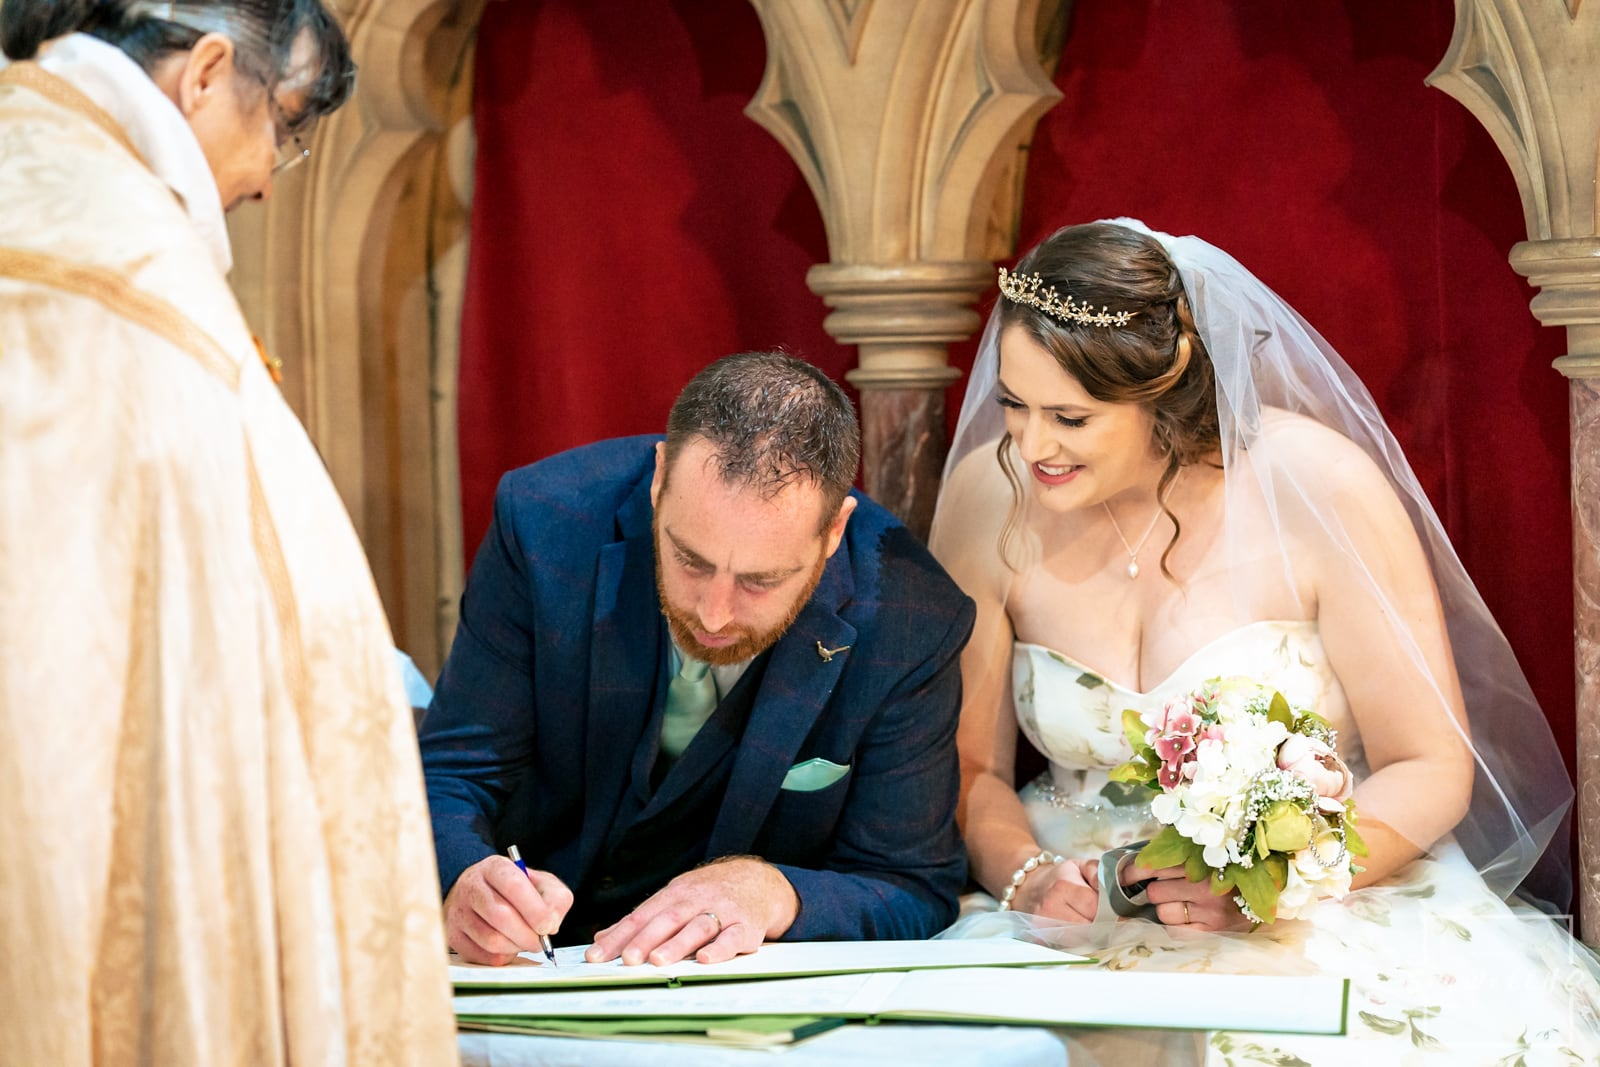 Lincoln Wedding Photography + Spilsby Church Wedding Photographer + Bride and groom sign the wedding register